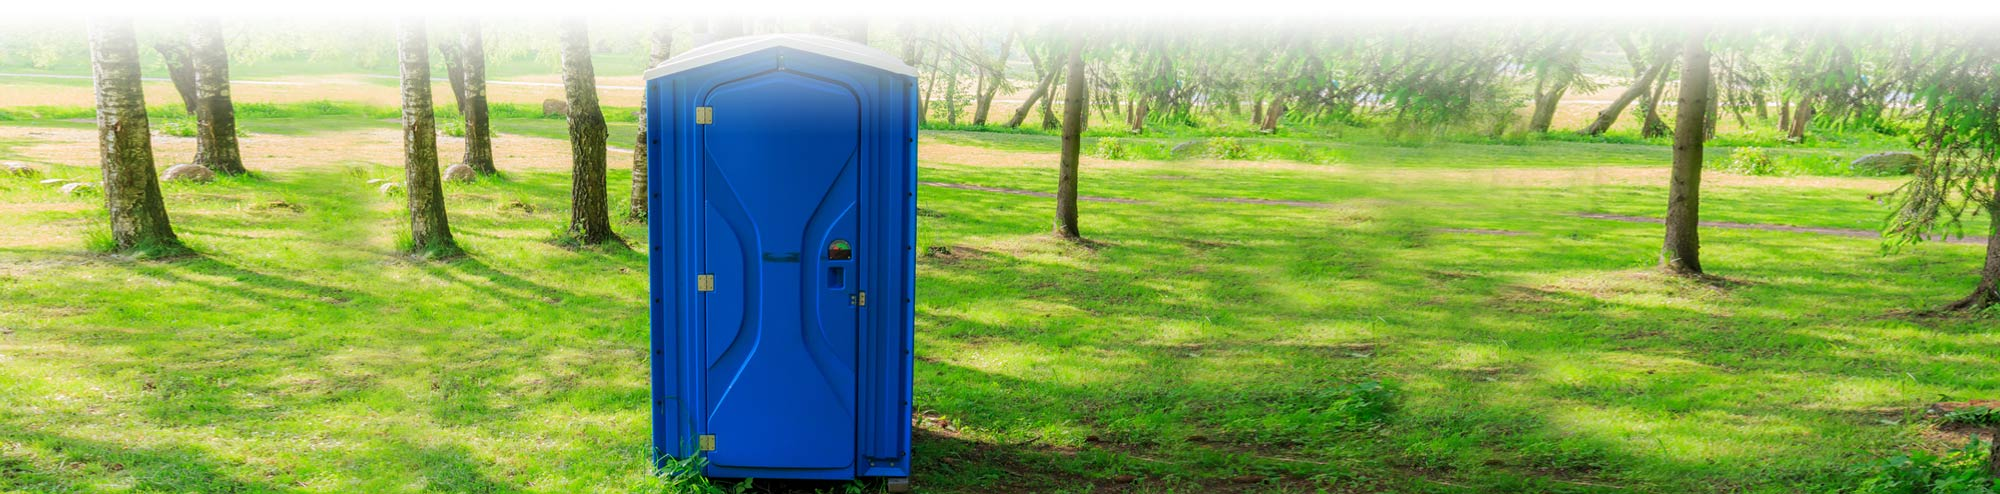 Blue Porta Potty in a wooded park